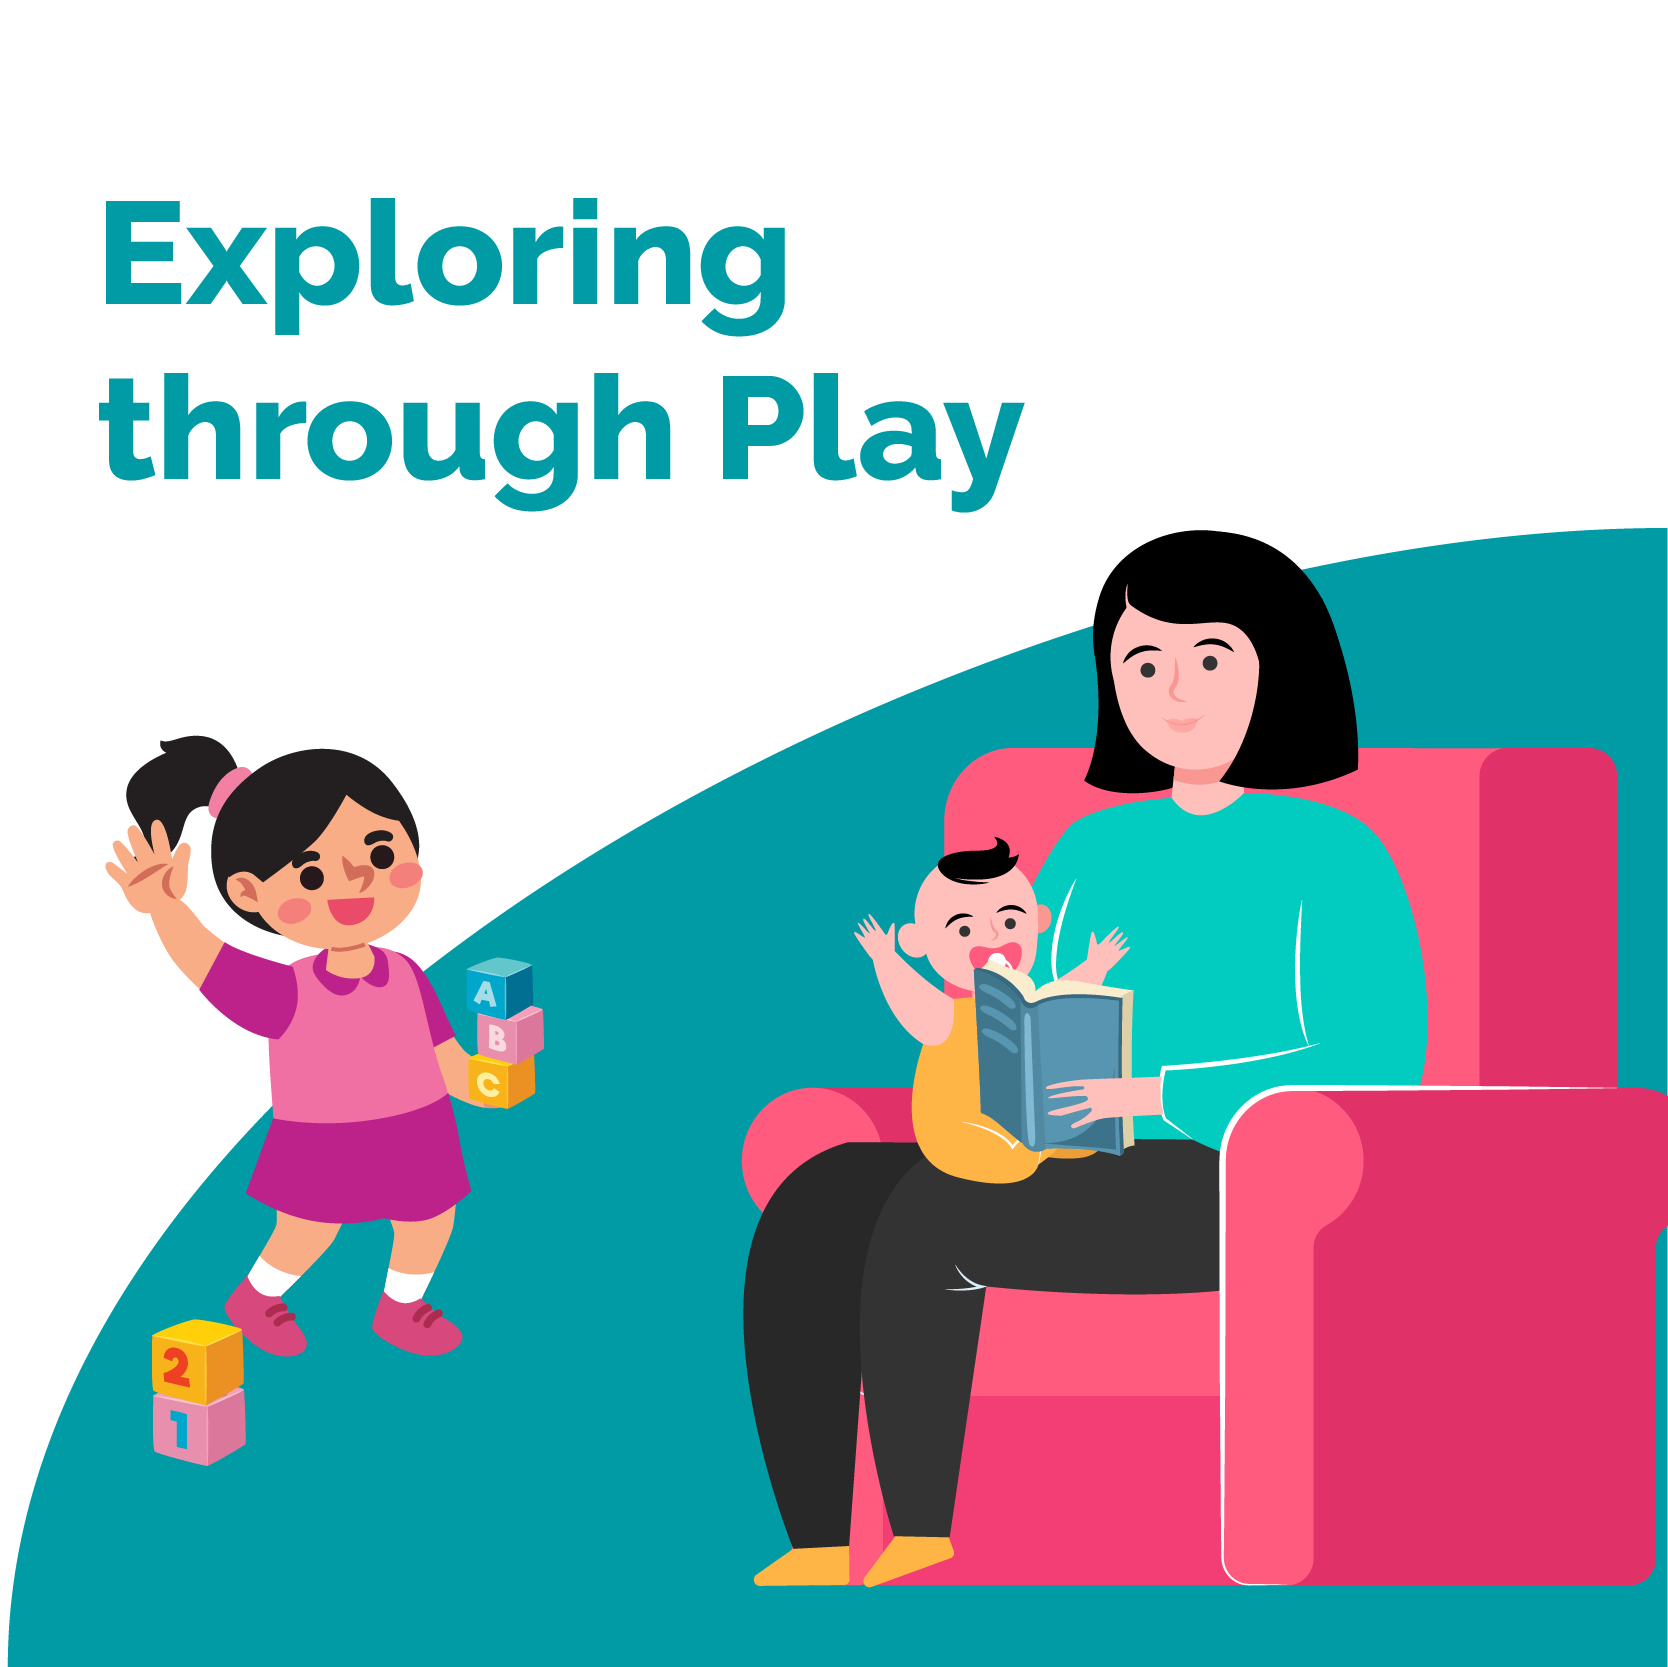 Explore through play